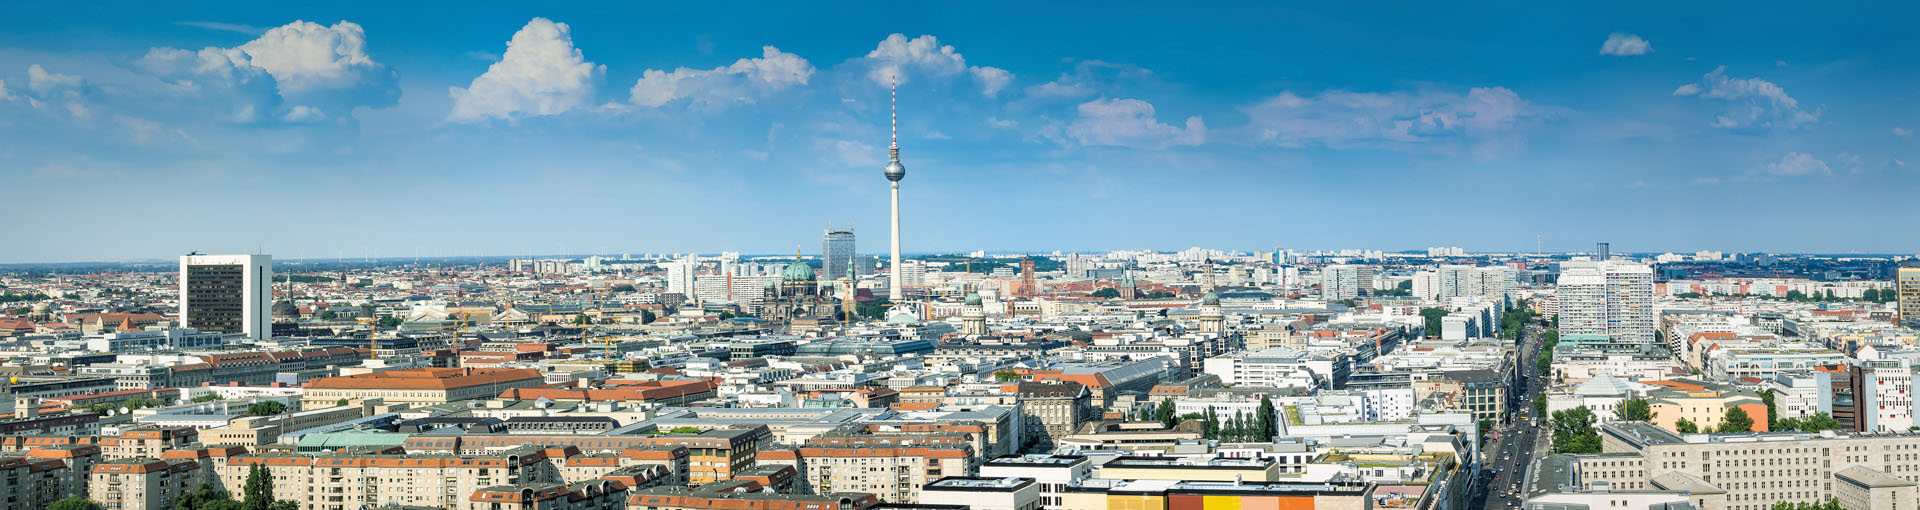 Panorama of the Berlin skyline, Germany with television tower, Berlin Cathedral and Leipziger Straße